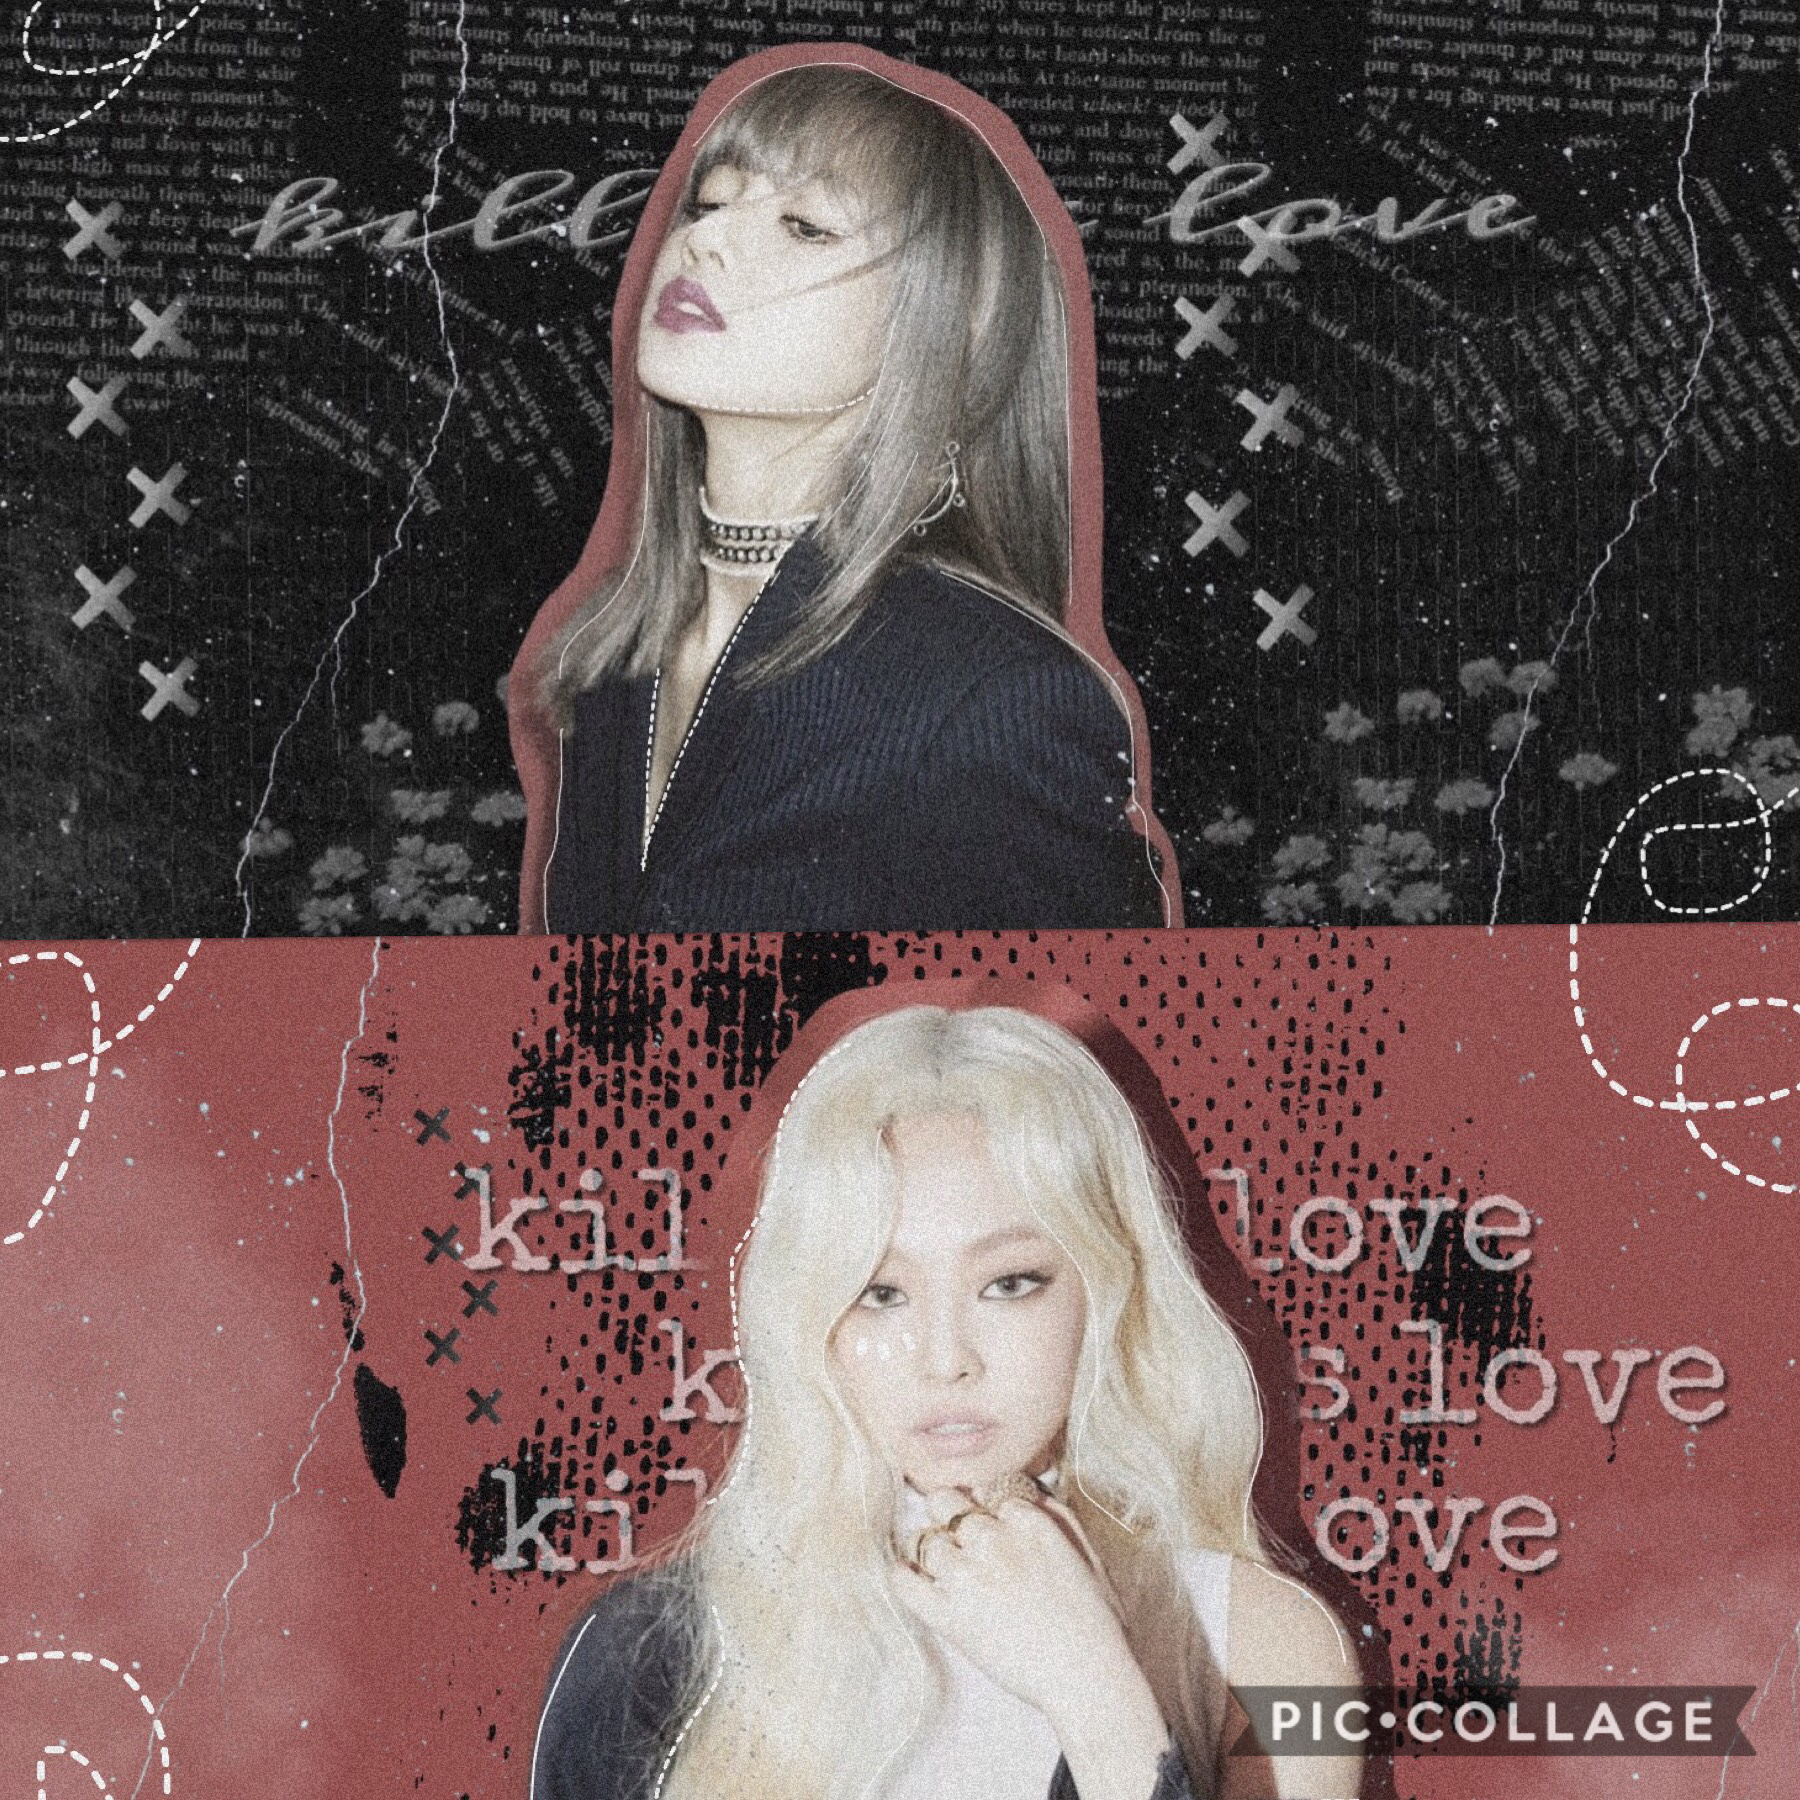 kill this love 3